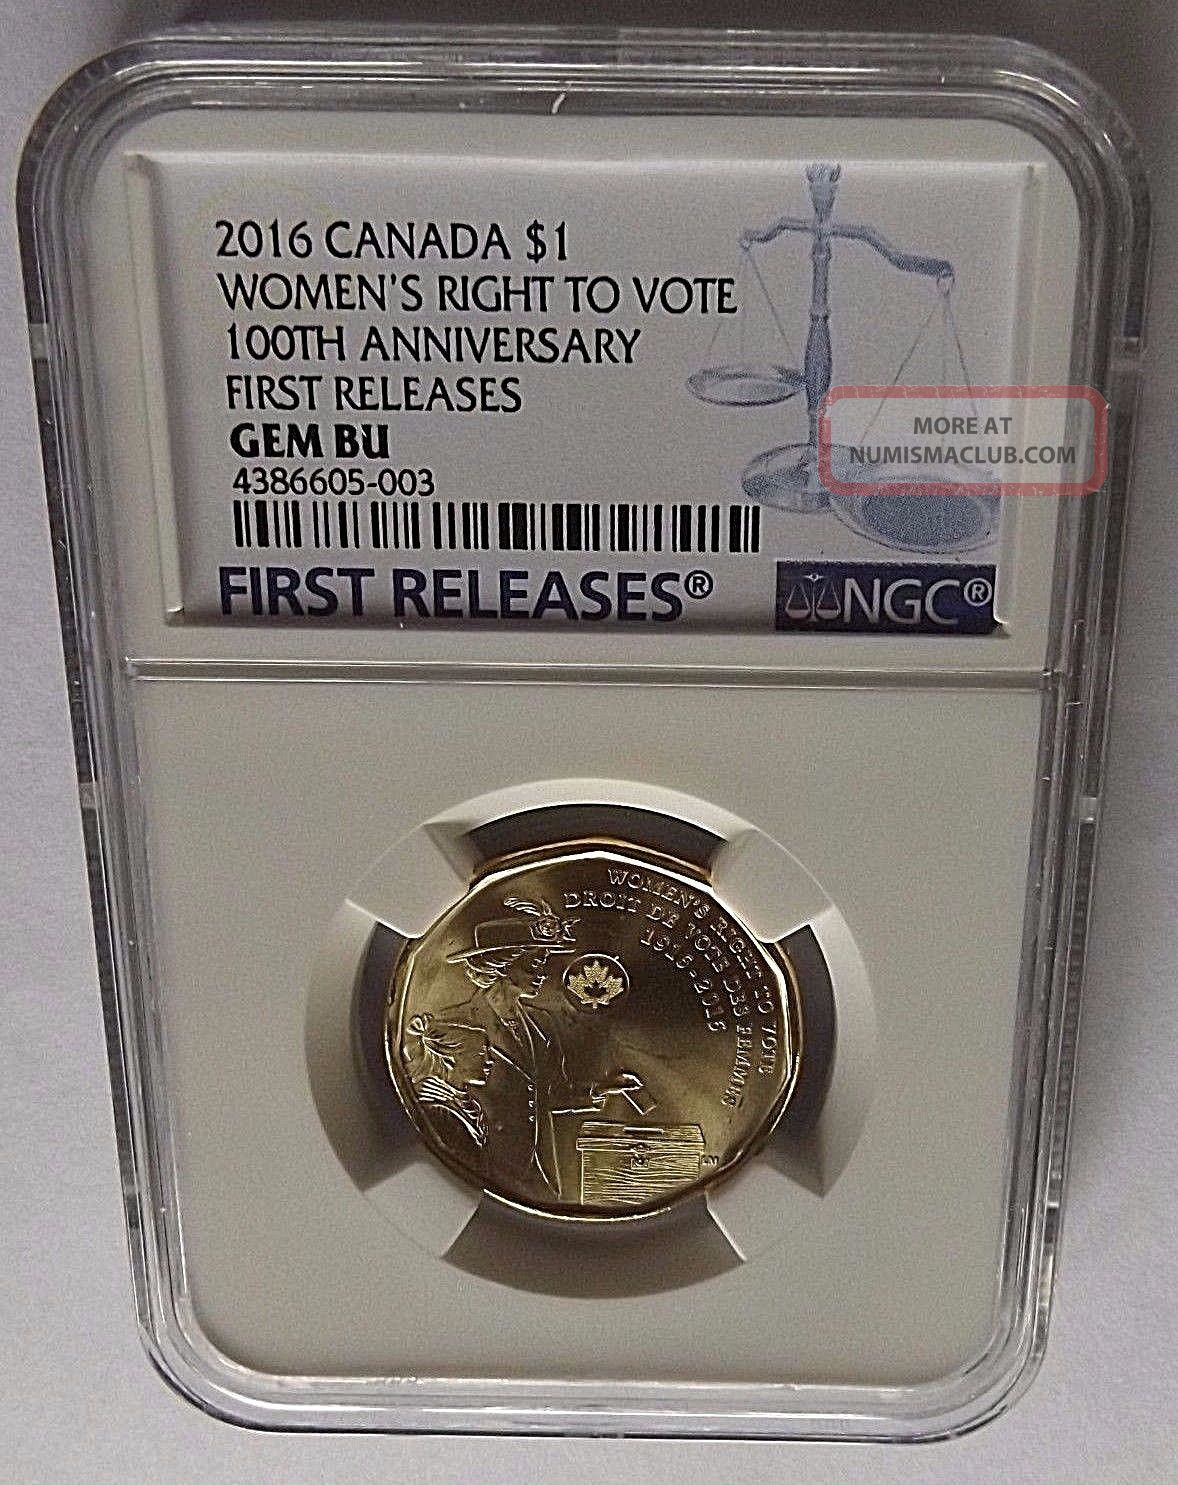 2016 Canada Ngc First Releases Gem Bu Women ' S Right To Vote Loon Dollar $1 Coins: Canada photo